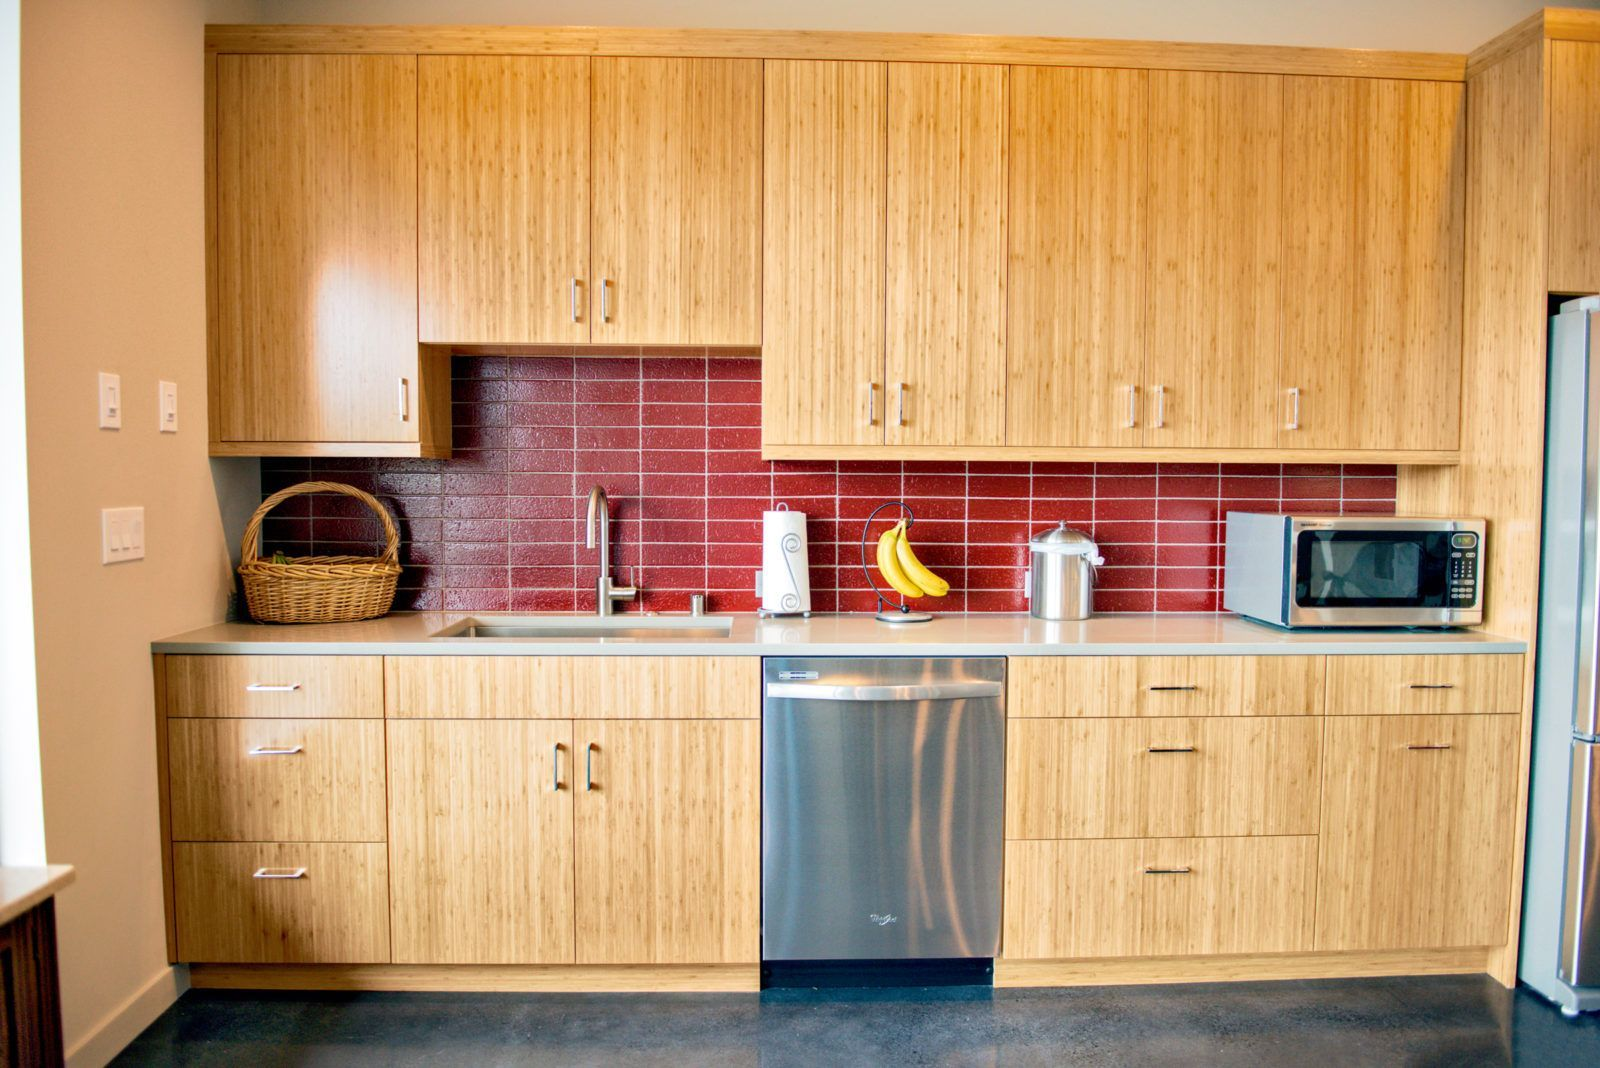 Contemporary Kitchen With Cranberry Red Glazed Slimbrick Tiile From Mutual Materials Kitchendesign Contemporary Kitchen Elegant Kitchen Design Kitchen Layout